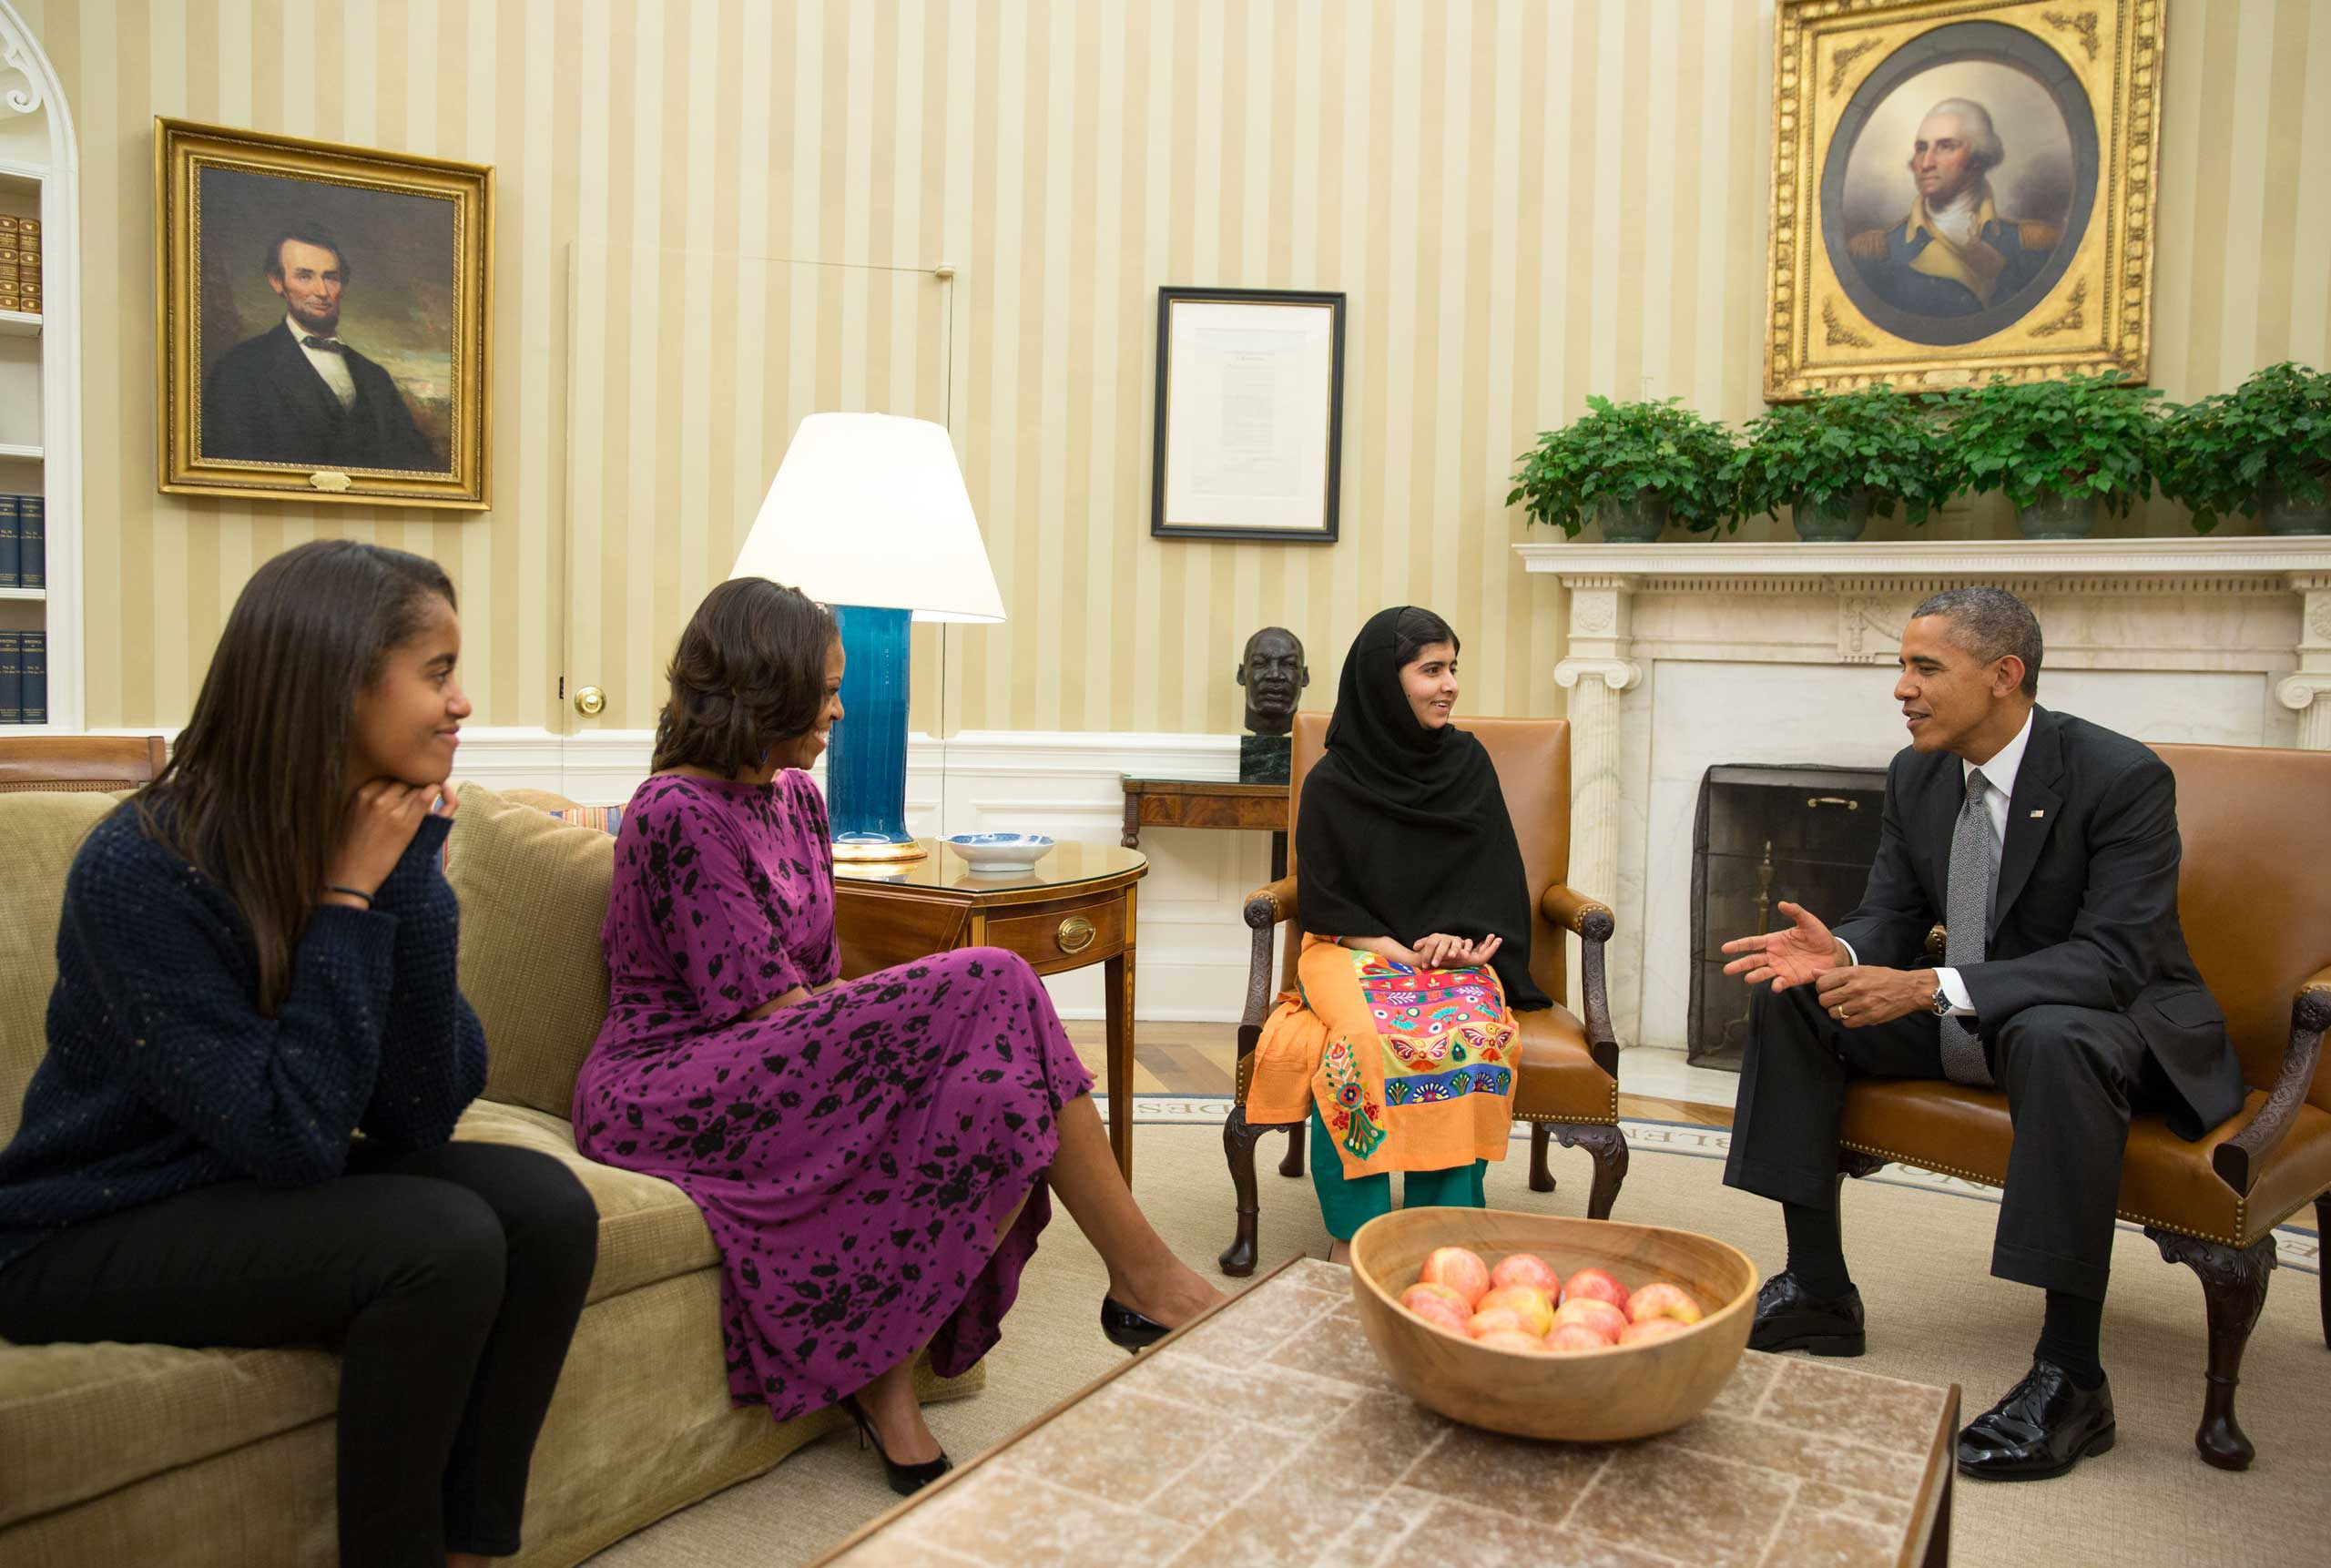 The Obama family meets with Malala Yousafzai in the Oval Office of the White House in Washington on Oct. 11, 2013.